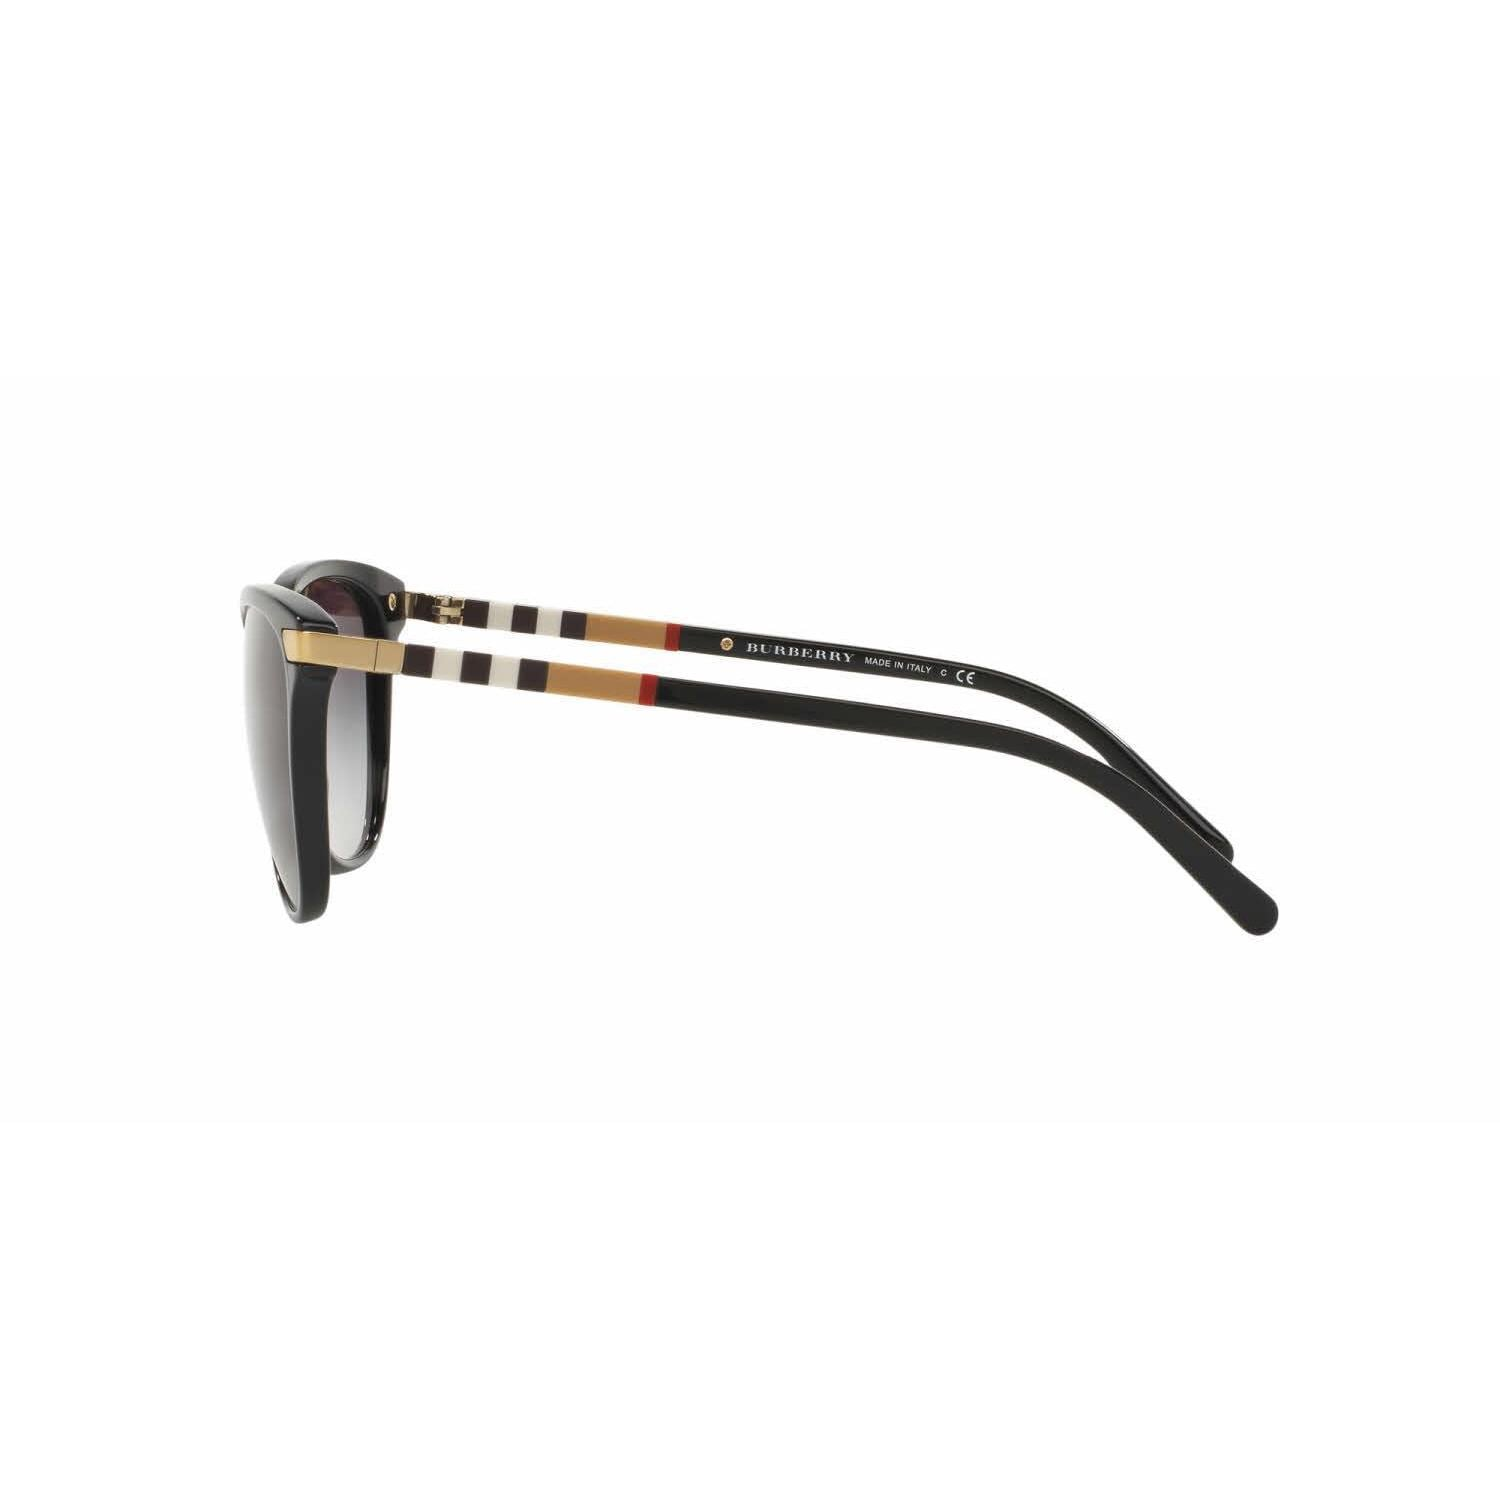 5042970d8b Shop Burberry Women BE4216 30018G Black Plastic Cat Eye Sunglasses - Free  Shipping Today - Overstock - 13318824